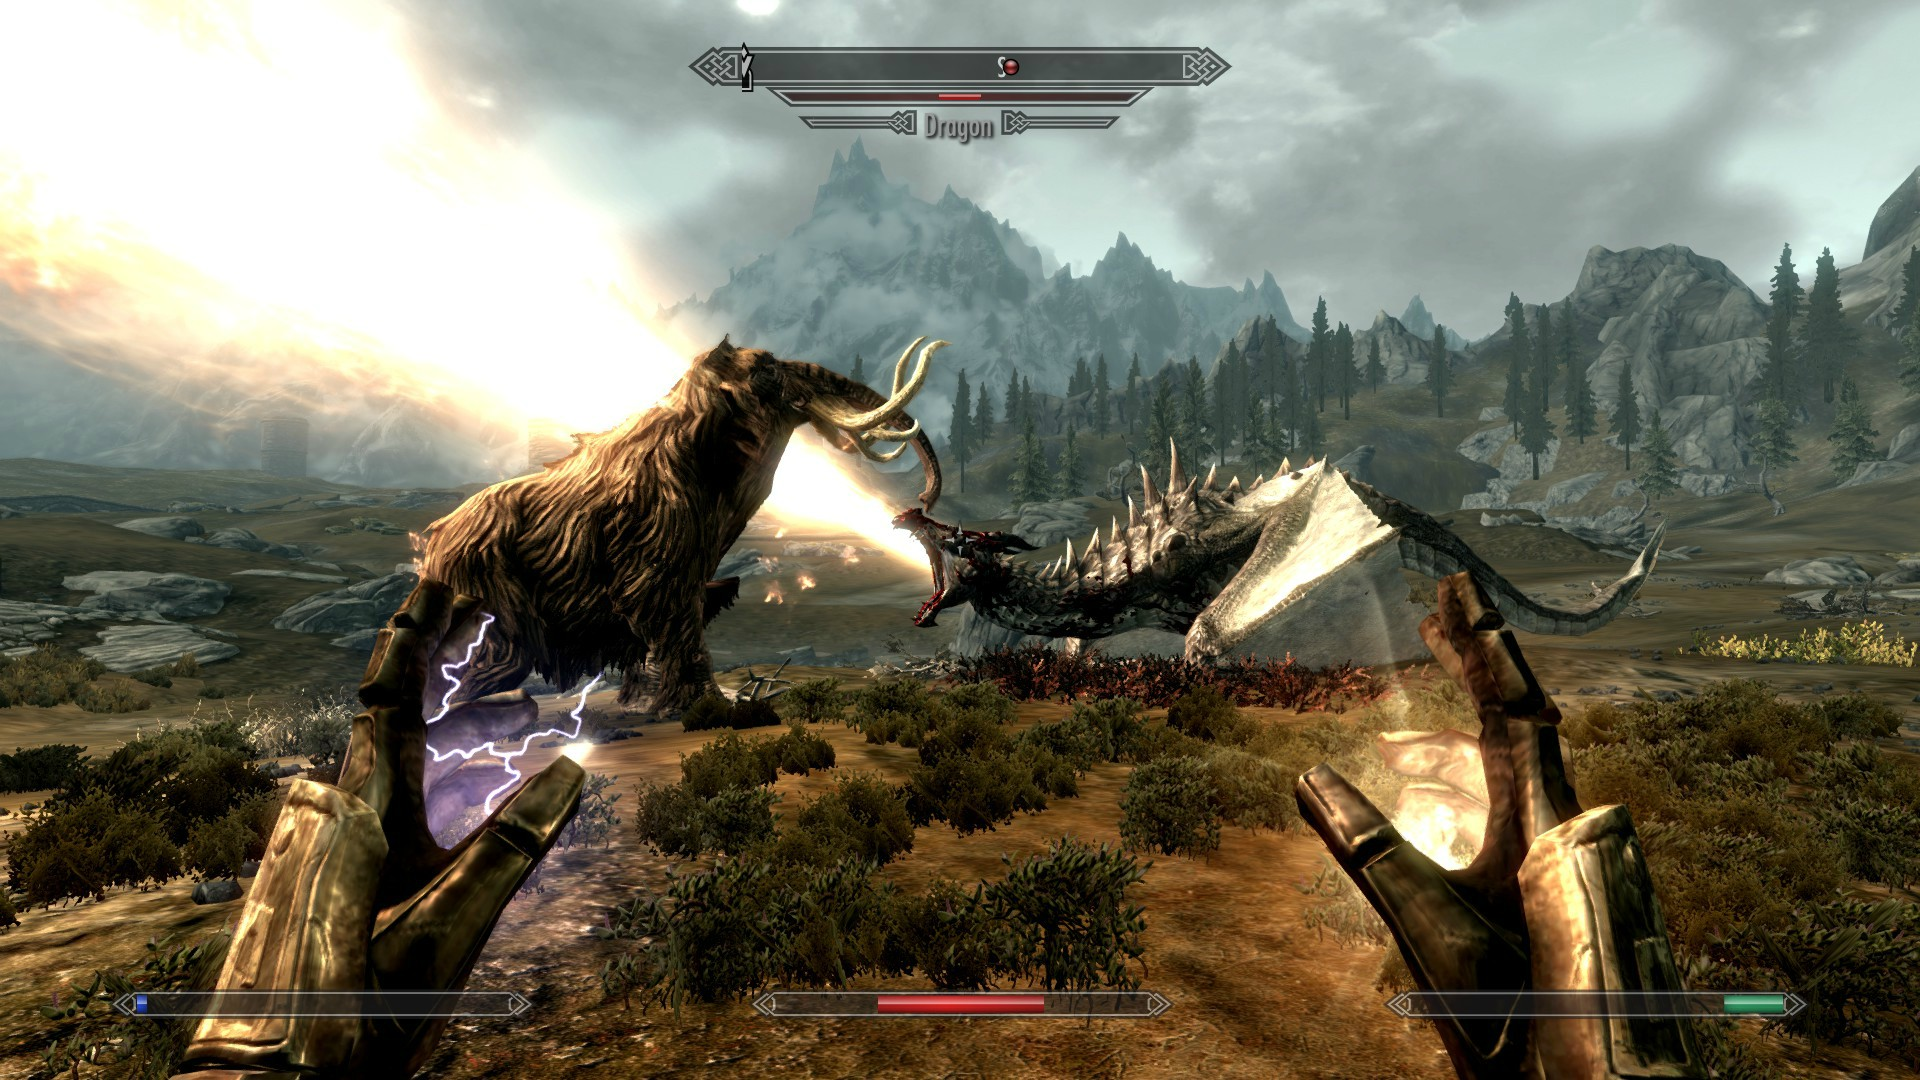 Skyrim: Game of the Year of All Years